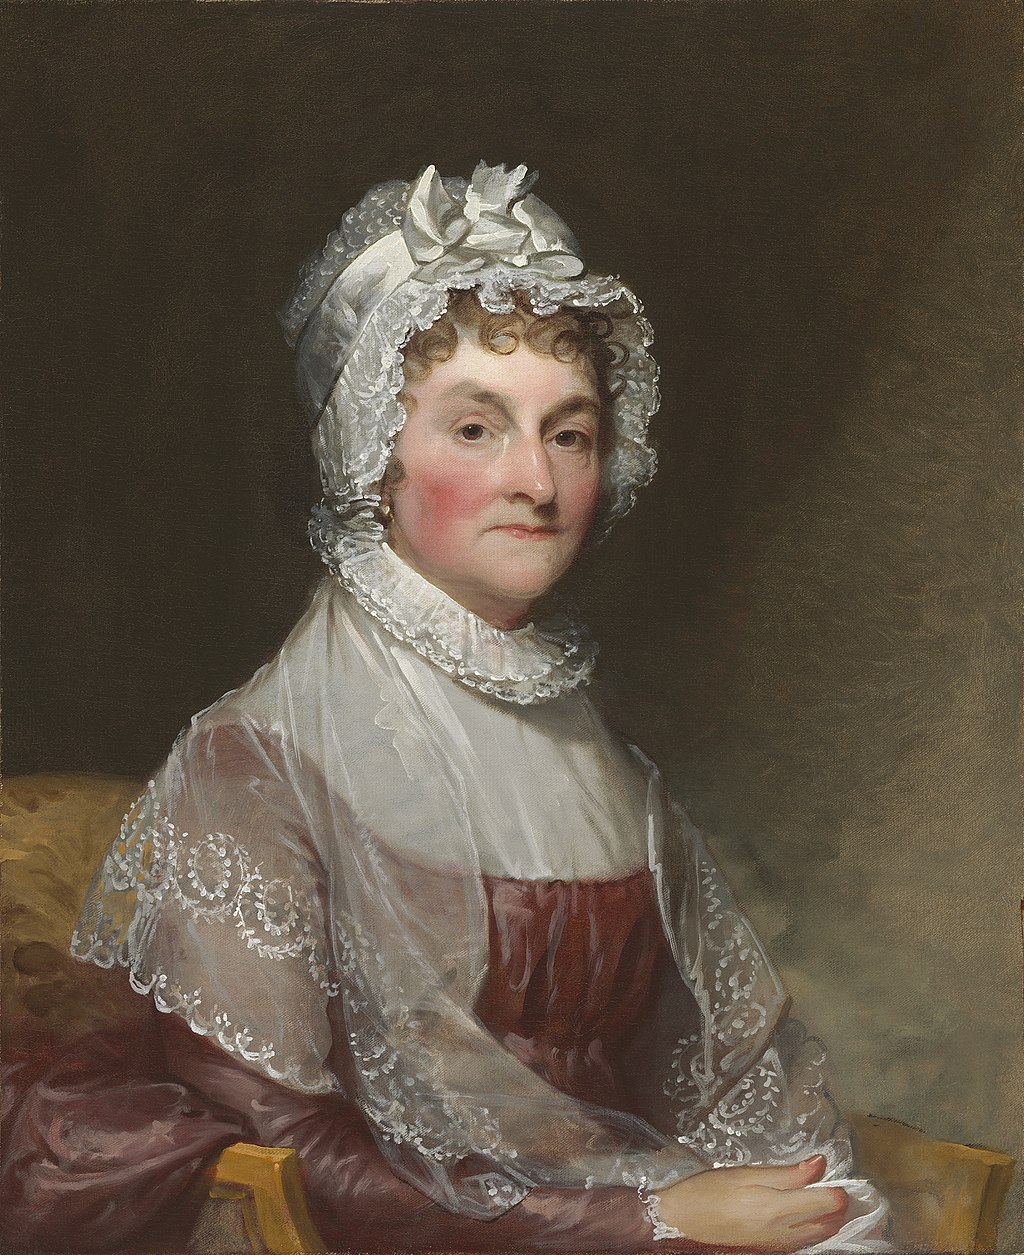 A painting of Abigail Adams by Gilbert Stuart.